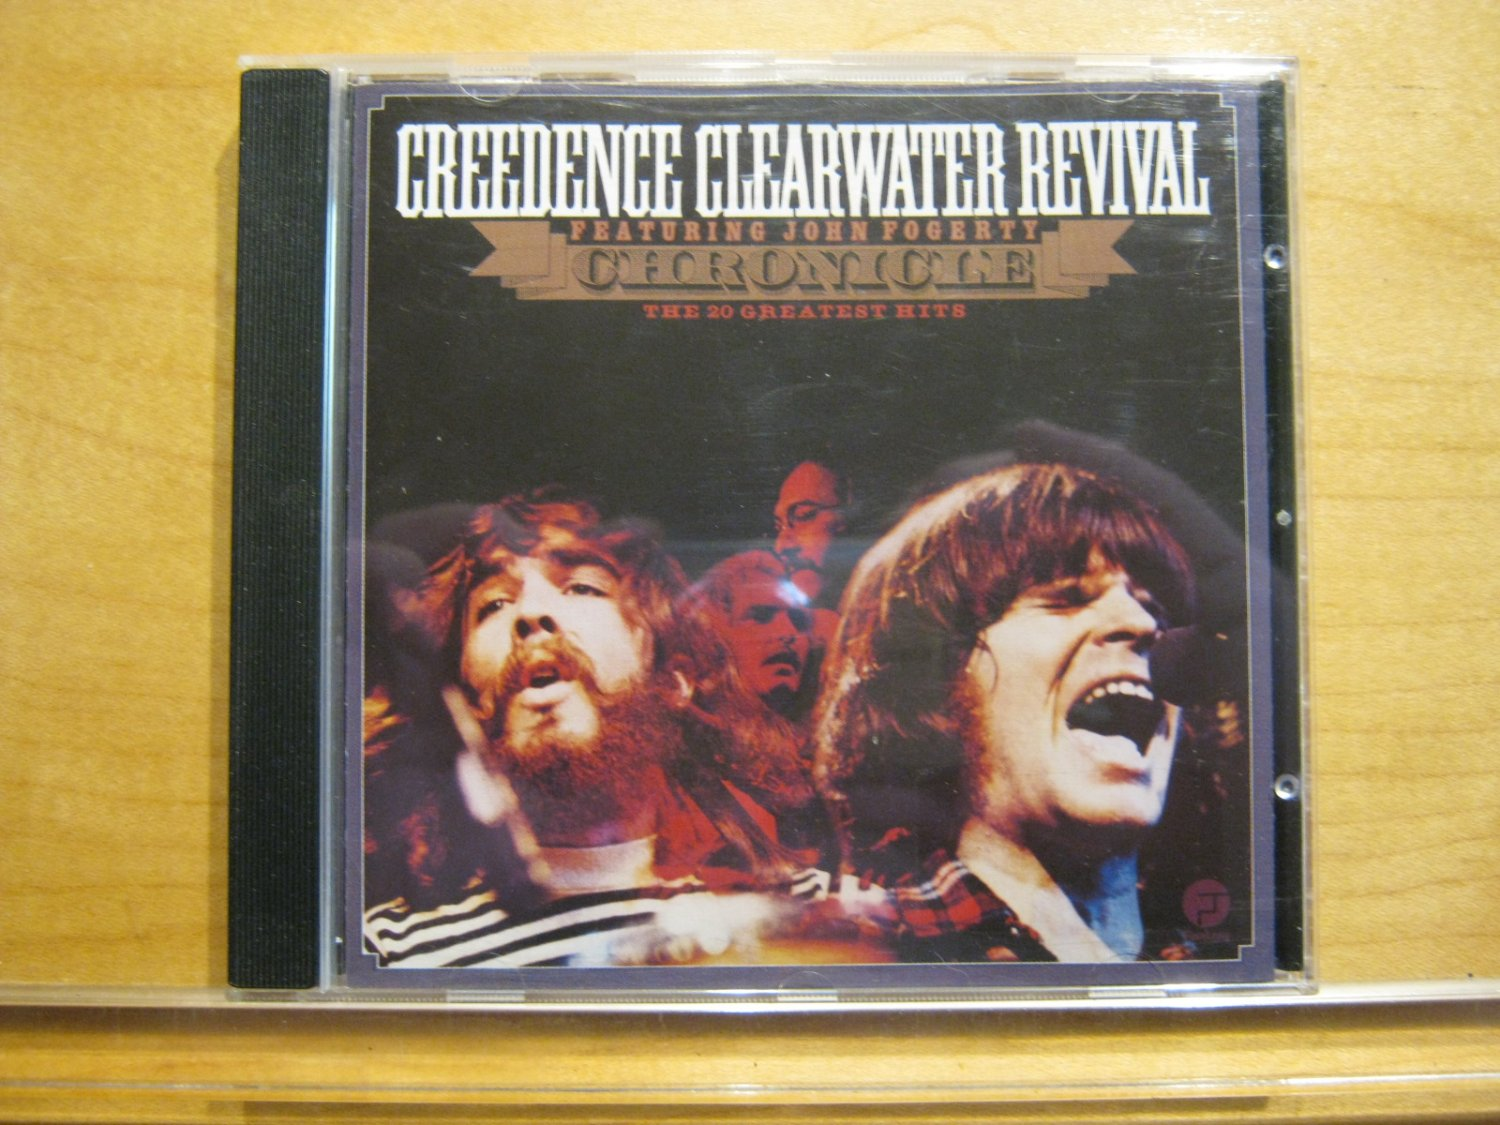 Creedence Clearwater Revival Chronicle   The 20 greatest Hits